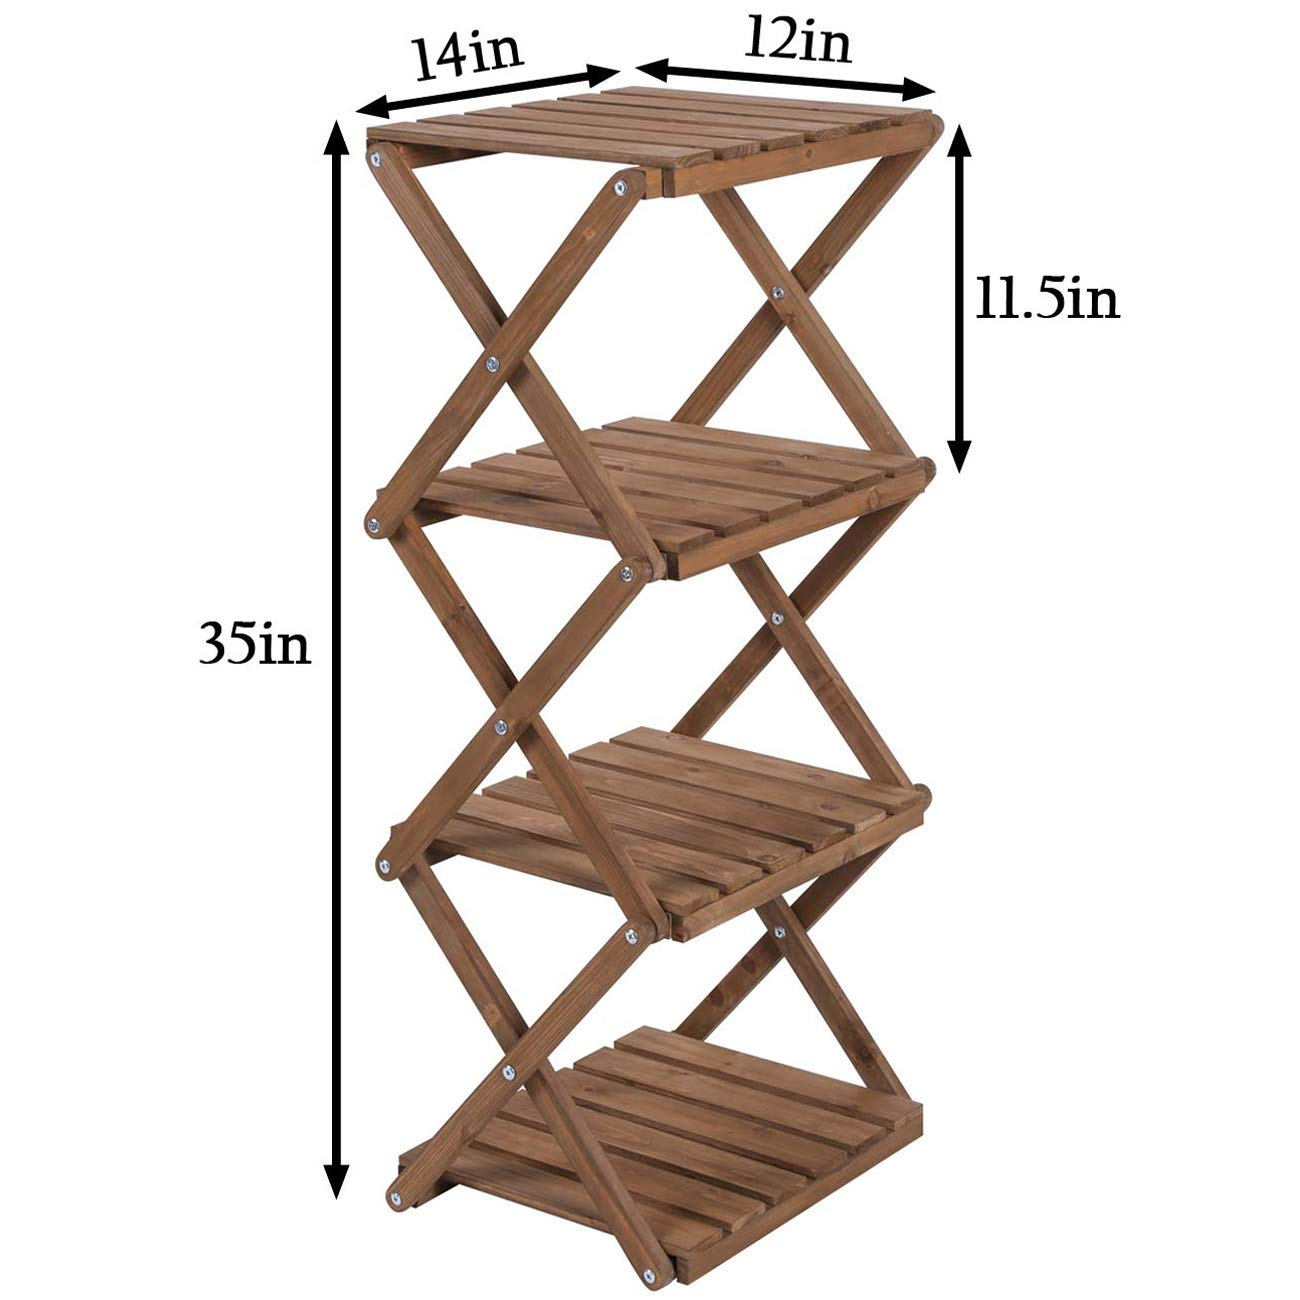 Sunnyglade 4-Tier Foldable Flower Rack Plant Stand Wood Shelf Multipurpose Utility Storage Rack Books Picture Frames Shelves for Yard Garden Patio Balcony Bedroom by Sunnyglade (Image #5)